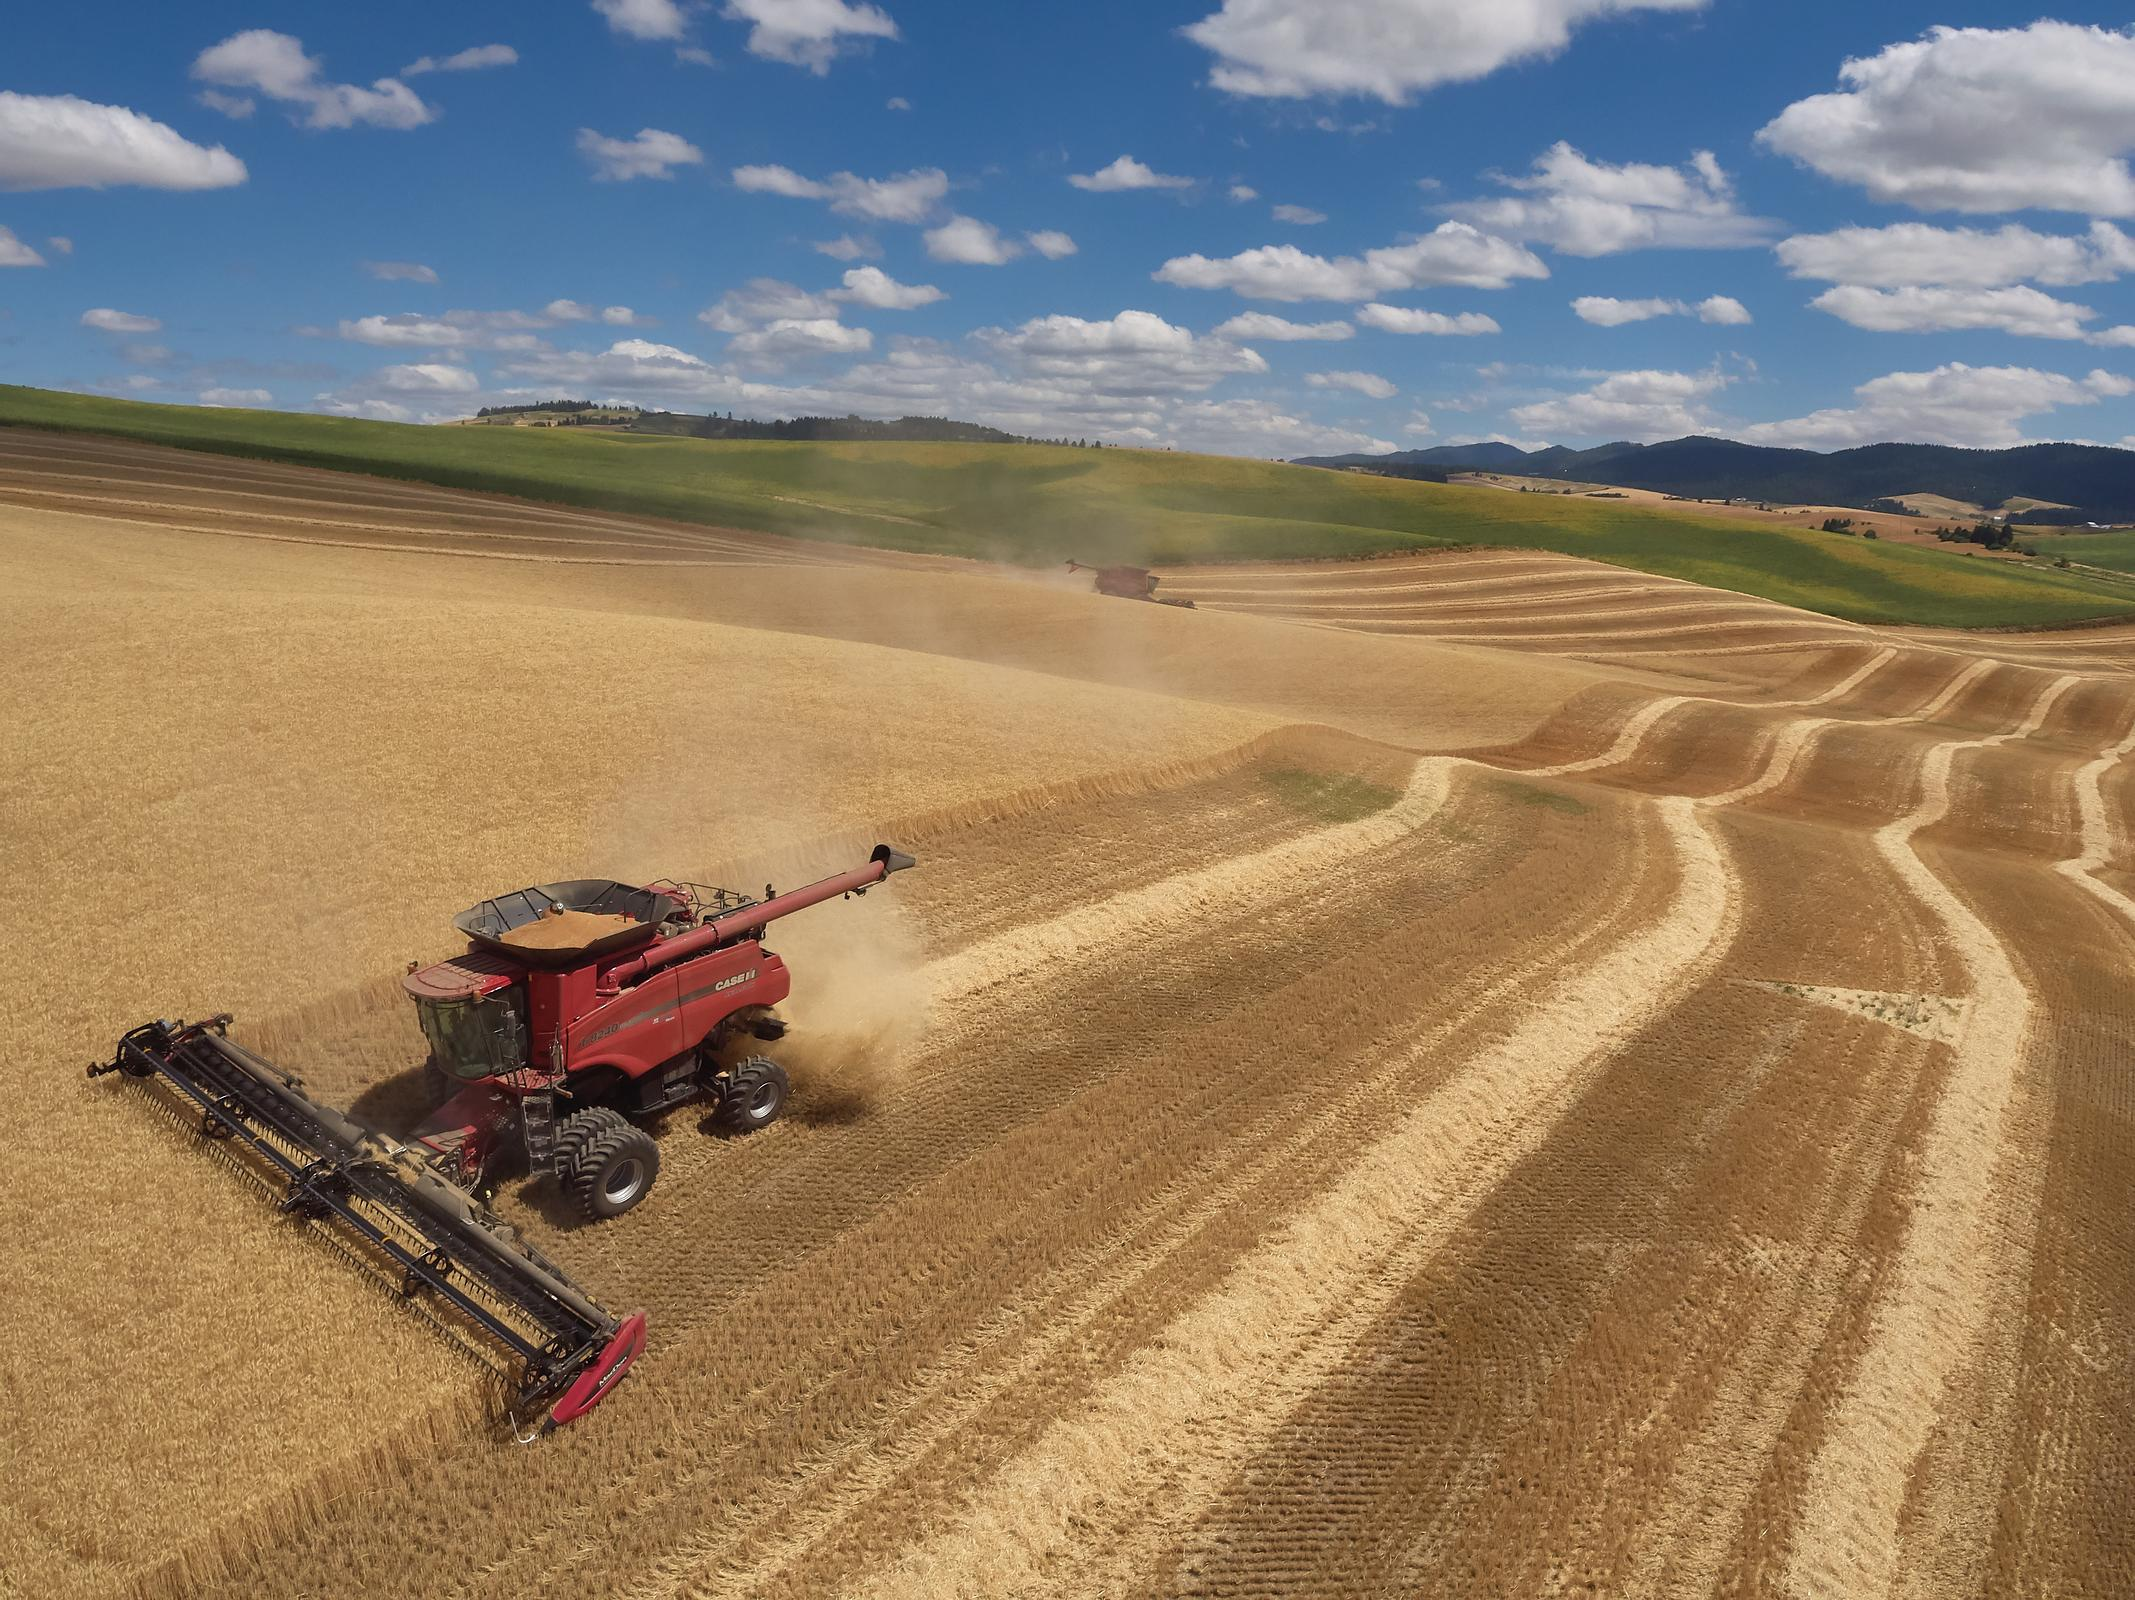 Droen aerial photograph of wheat harvest